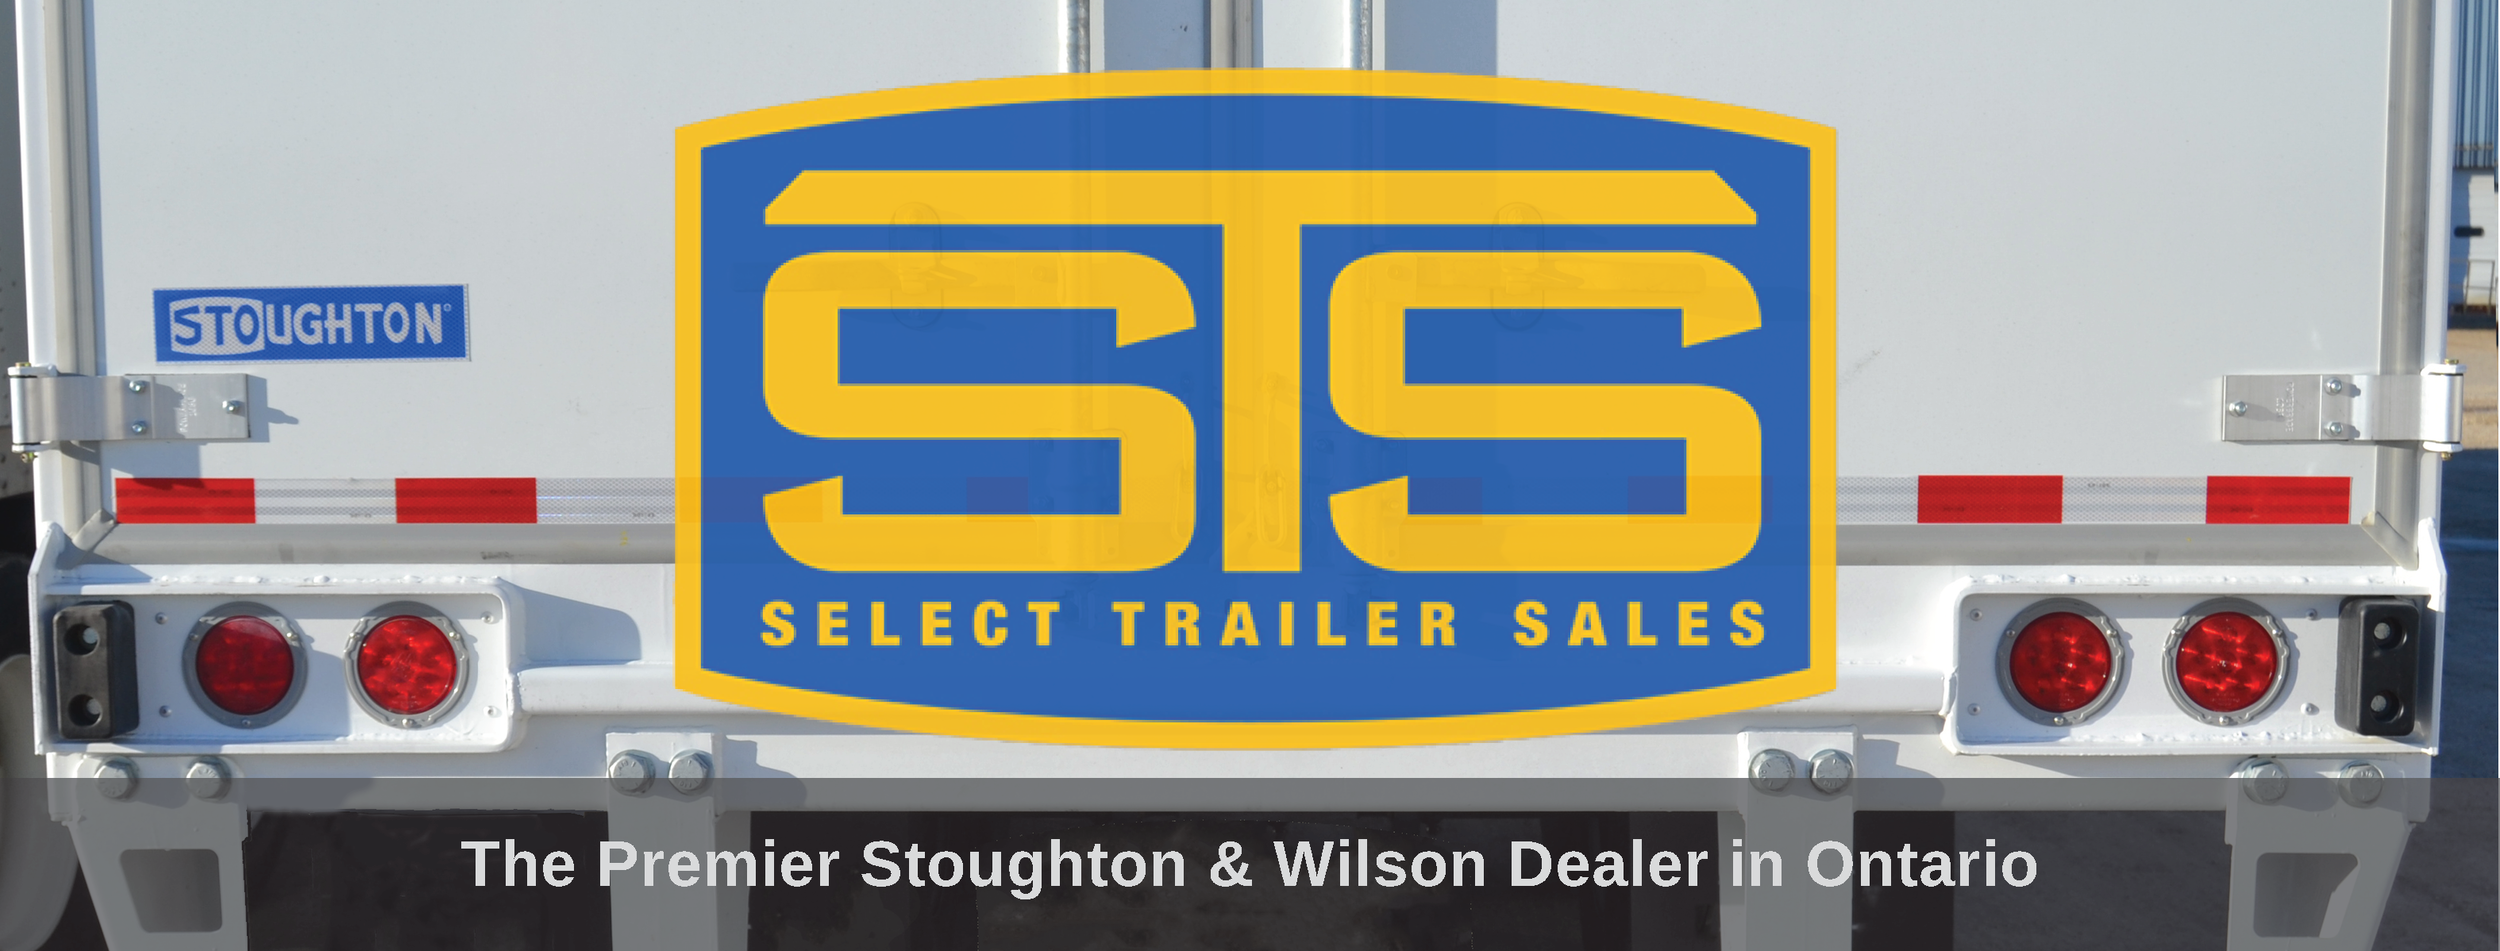 Select Trailer Sales Ontario Canada logo on Stoughton Trailer